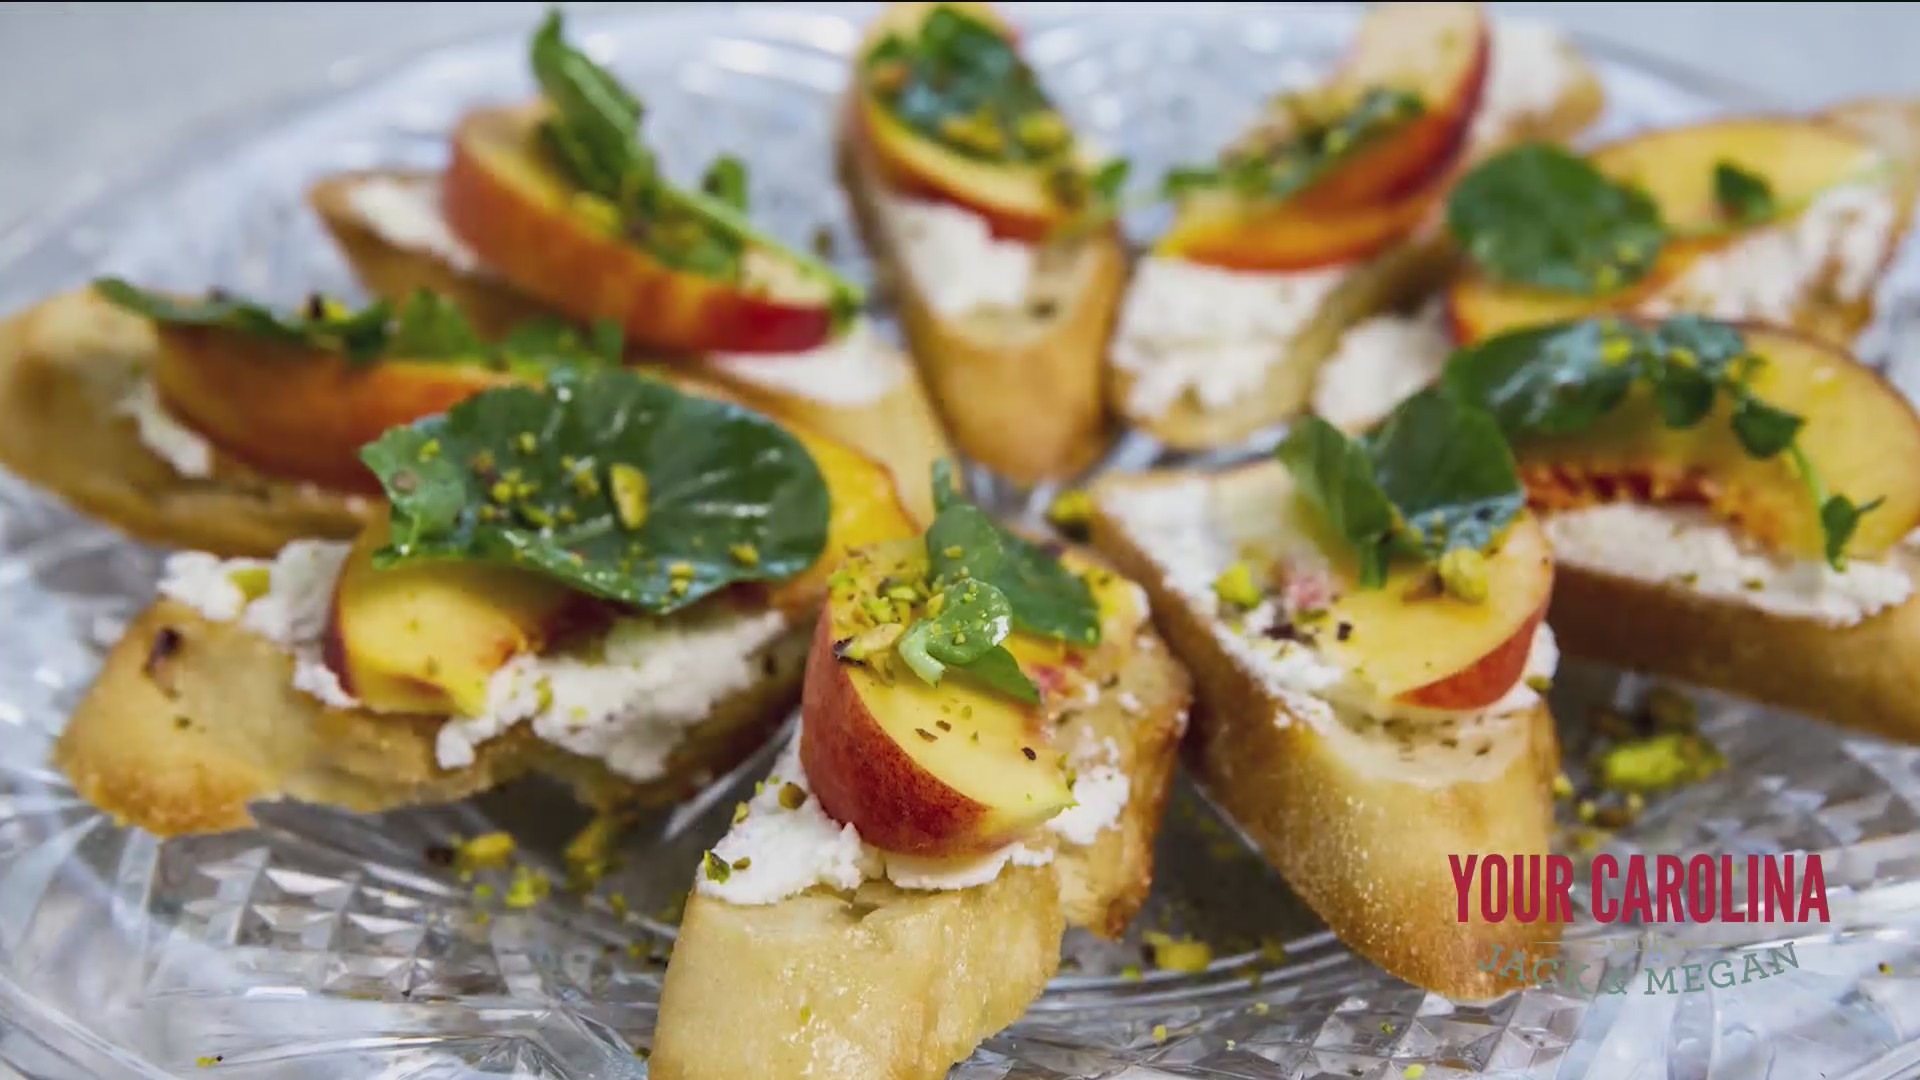 Chef's Kitchen - Ricotta and Peach Crostini with Pistachios